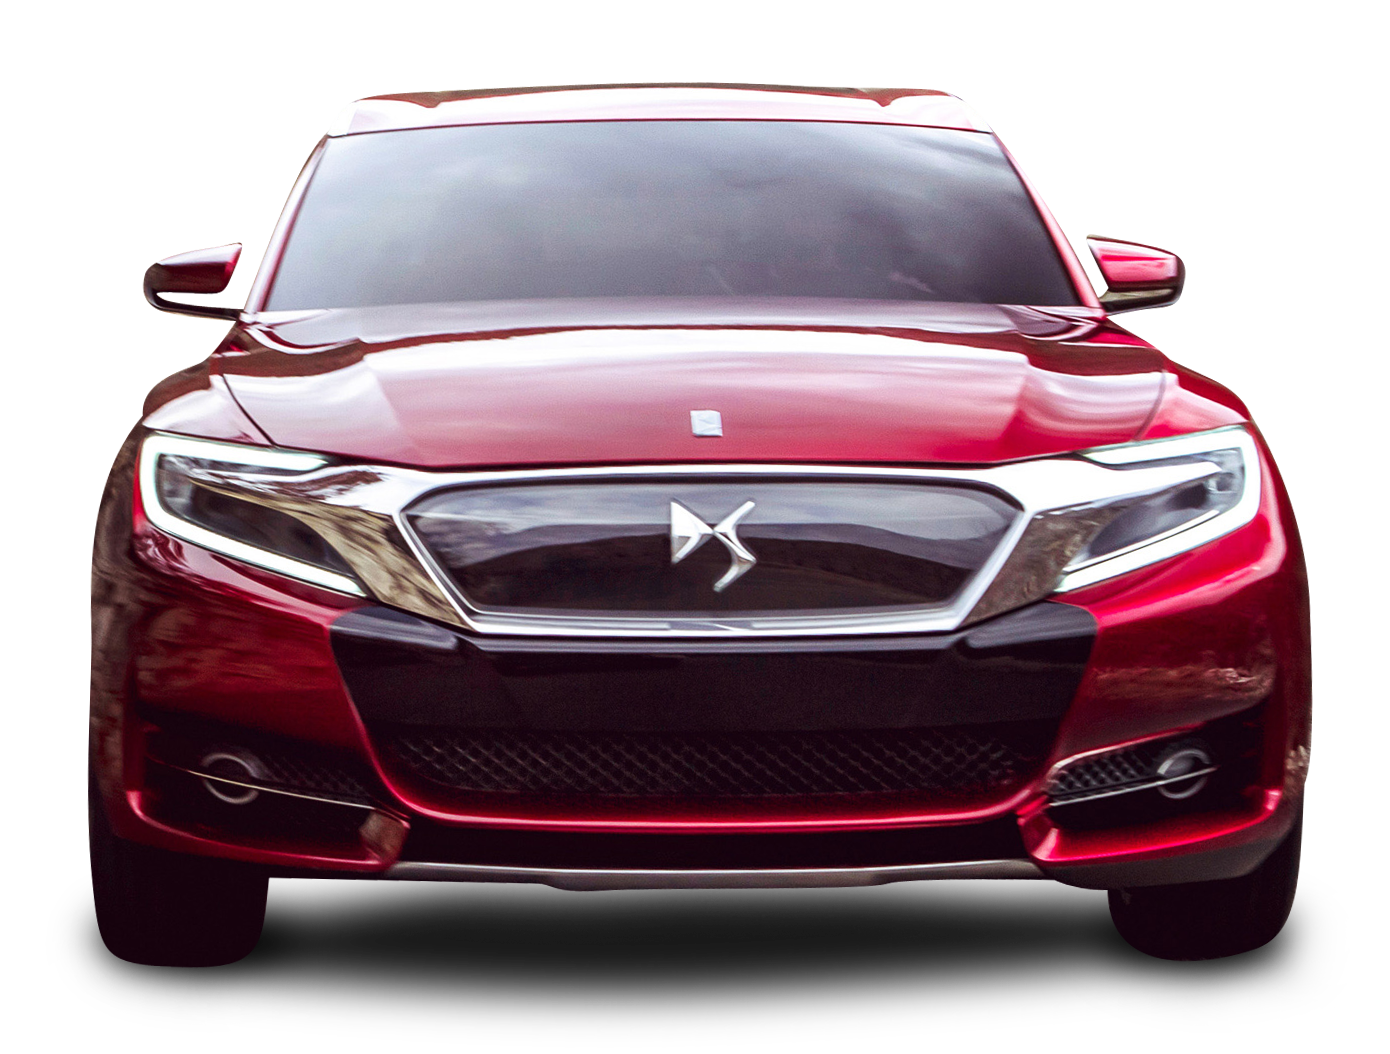 Car clipart front view png free library Red Citroen DS Wild Rubis Front View Car PNG Image - PurePNG | Free ... png free library